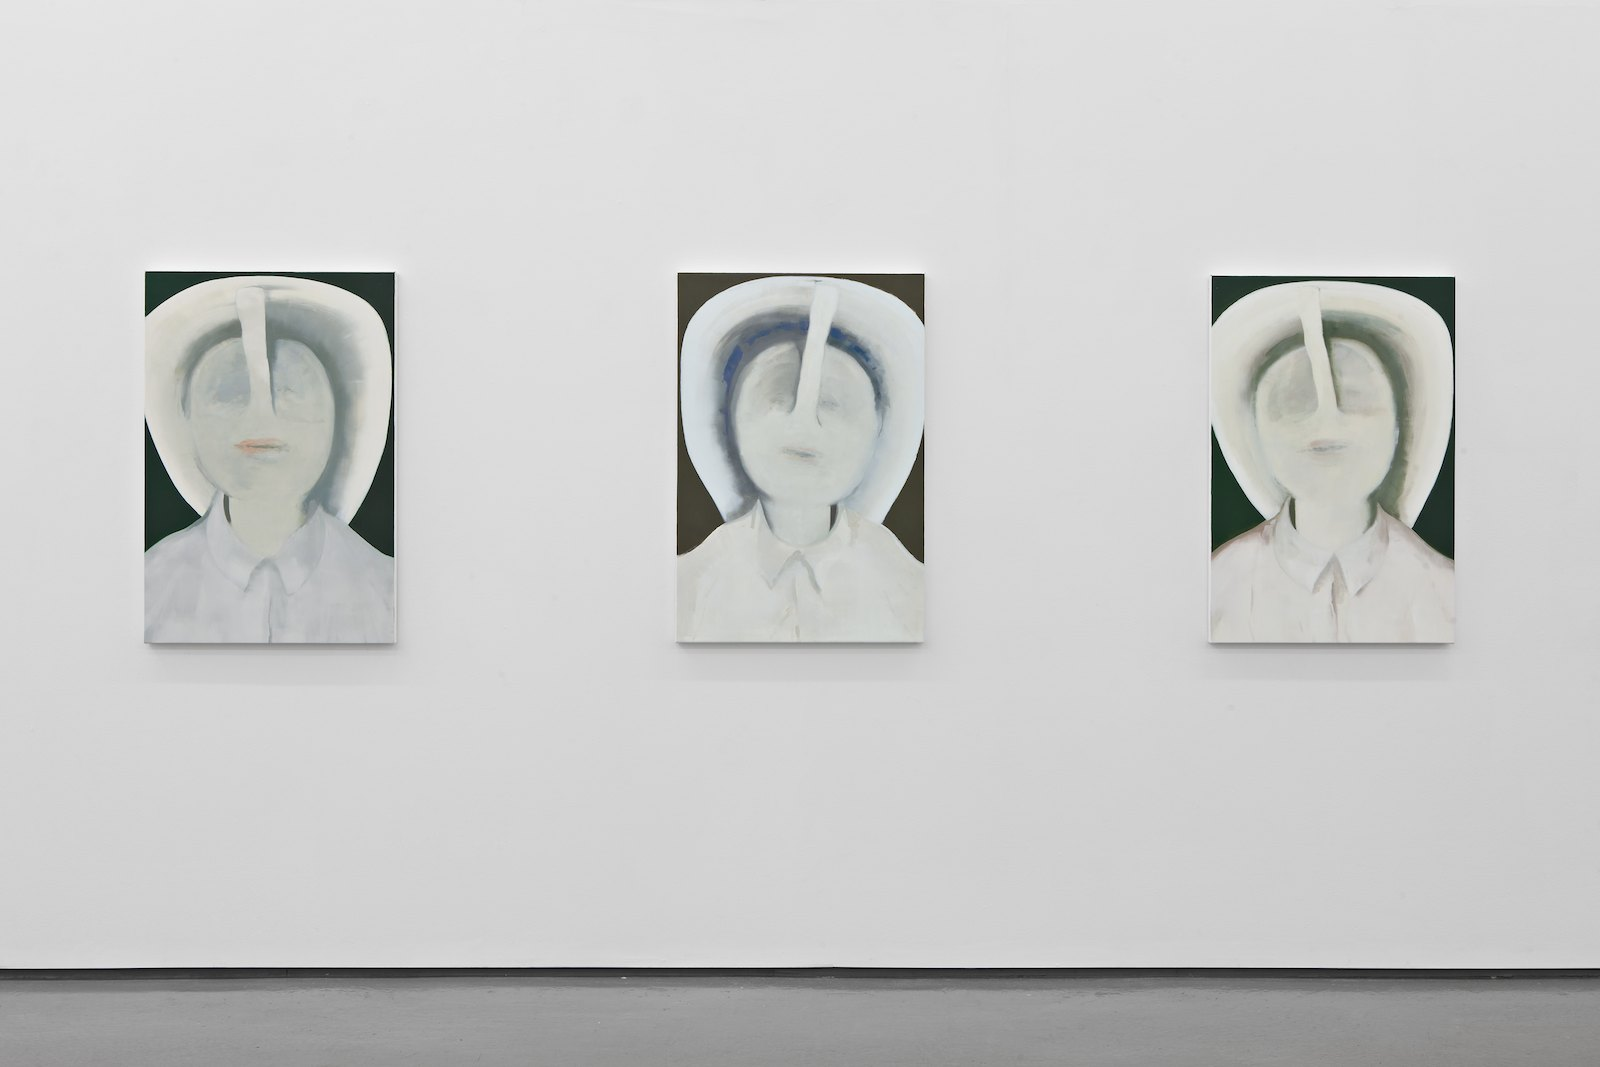 The Groan in the Fiddle, 2012, oil on canvas over panel, each 91,5 x 61 cm. Installation view, Håvard Homstvedt, Truth Pops a Reflex, Galleri Riis, Oslo, 2012